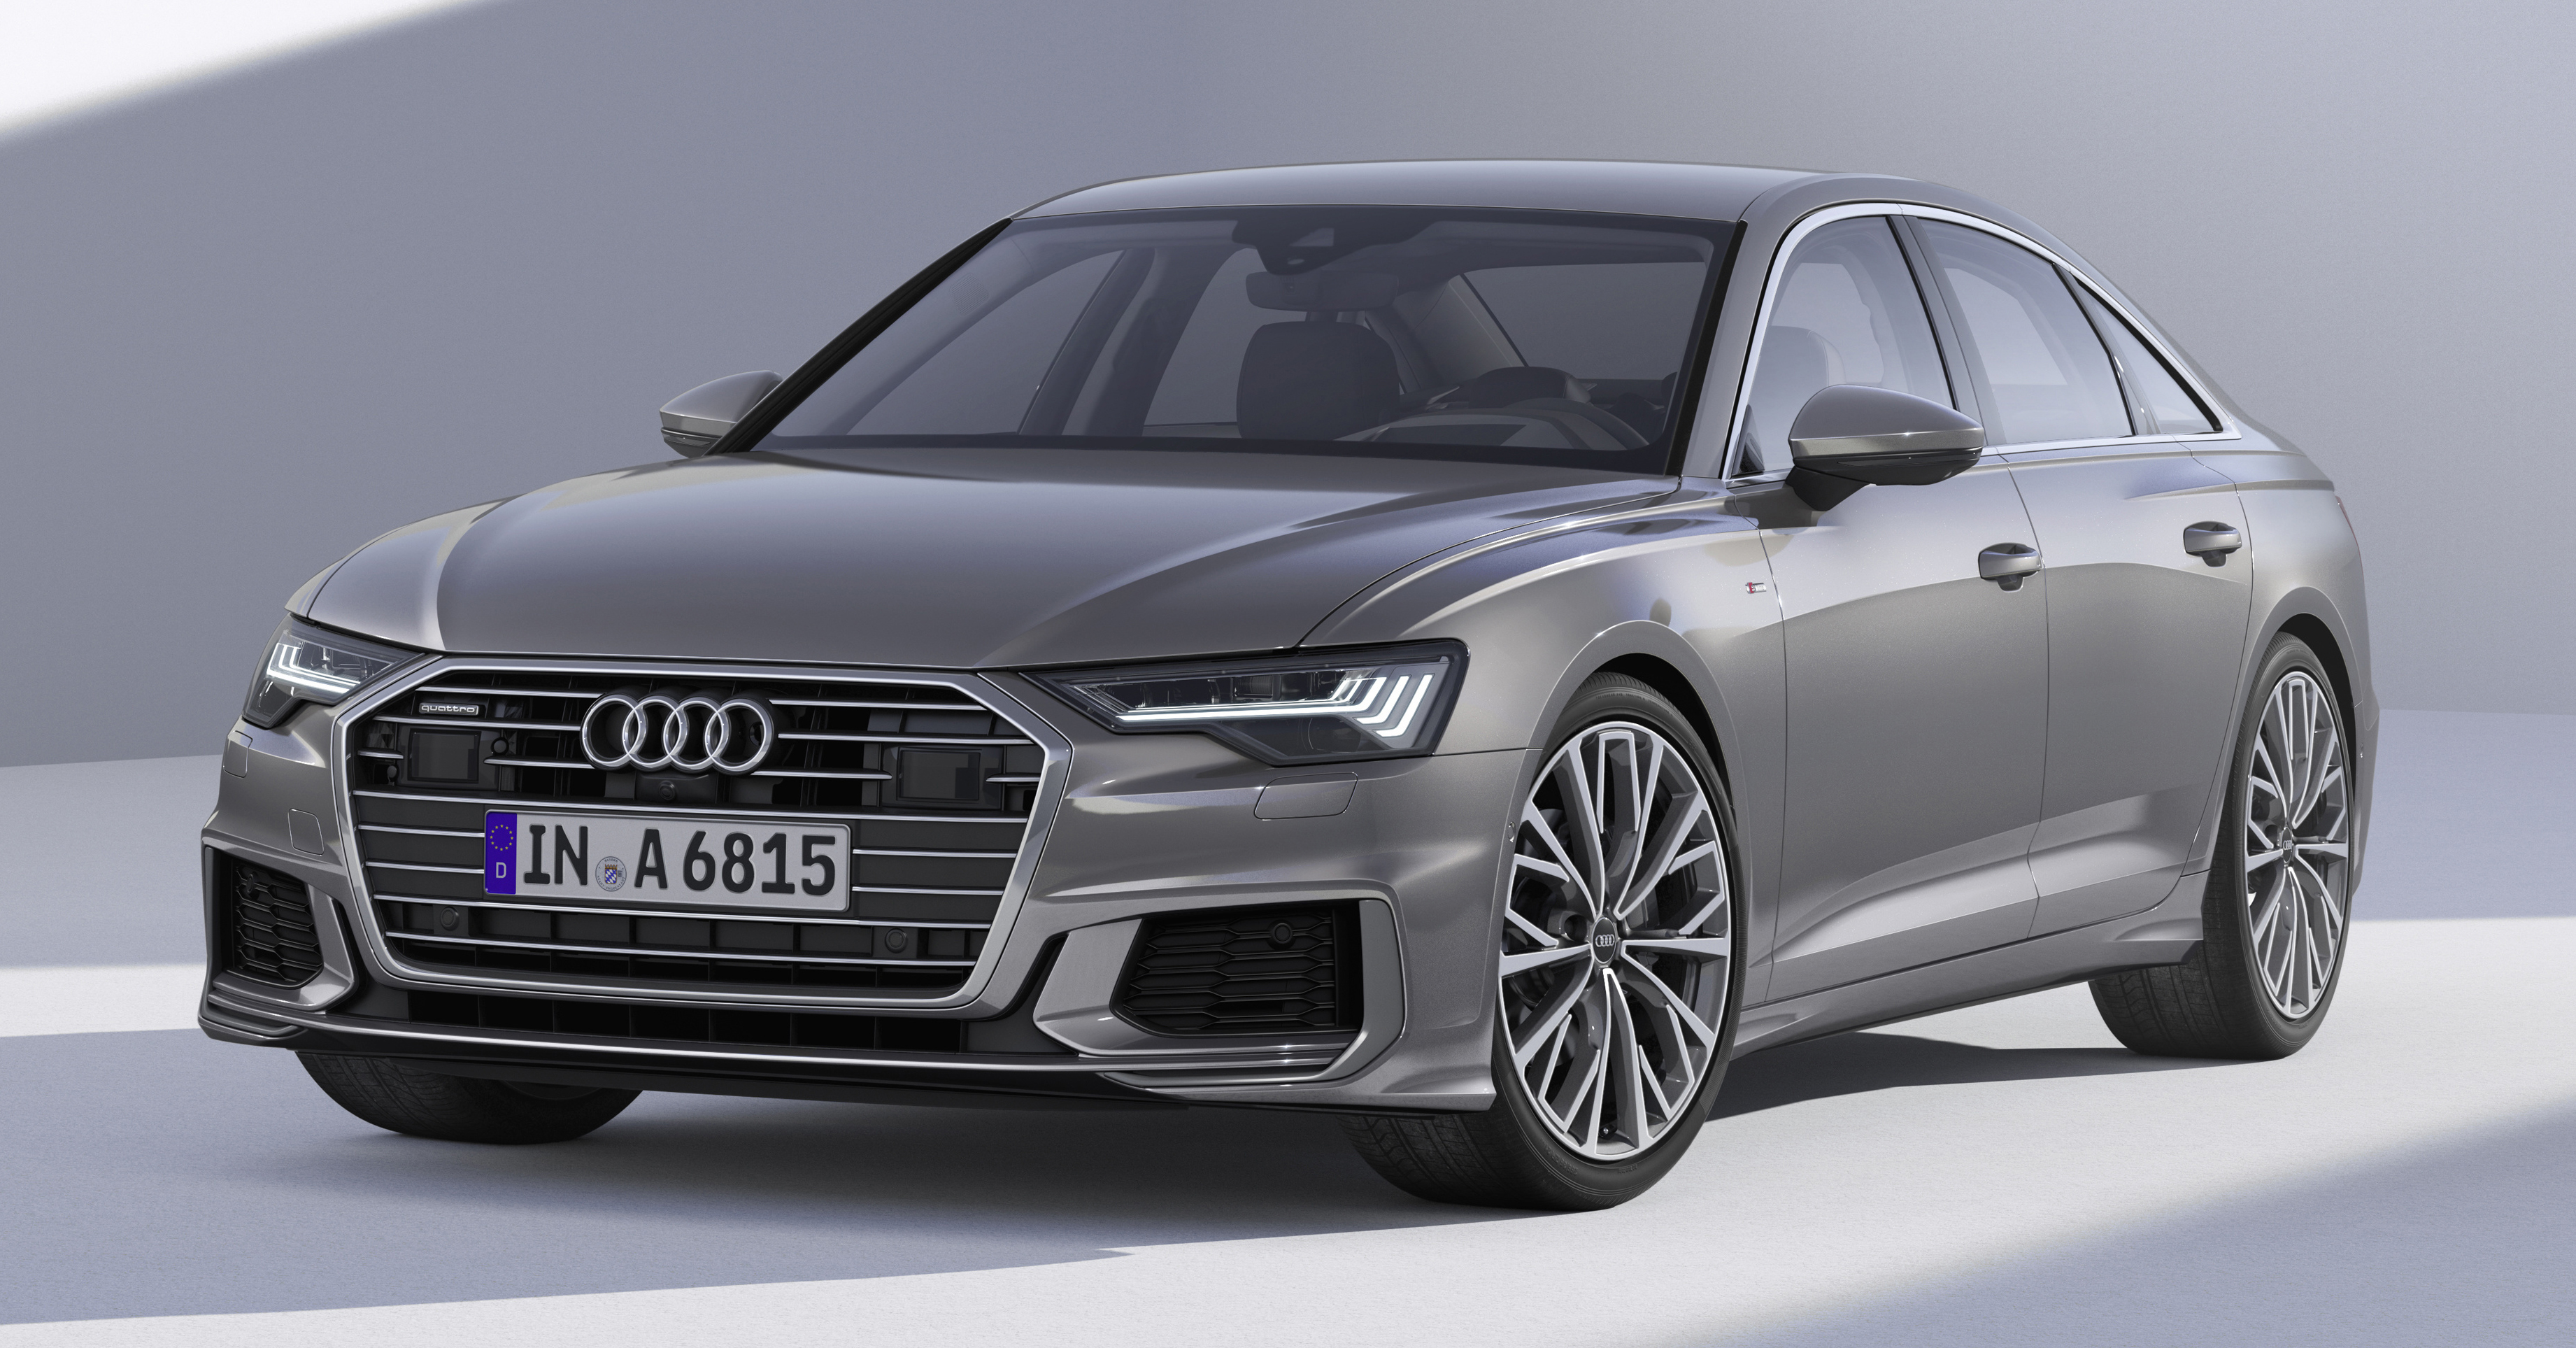 2019 audi a6 officially revealed with mild hybrid tech. Black Bedroom Furniture Sets. Home Design Ideas